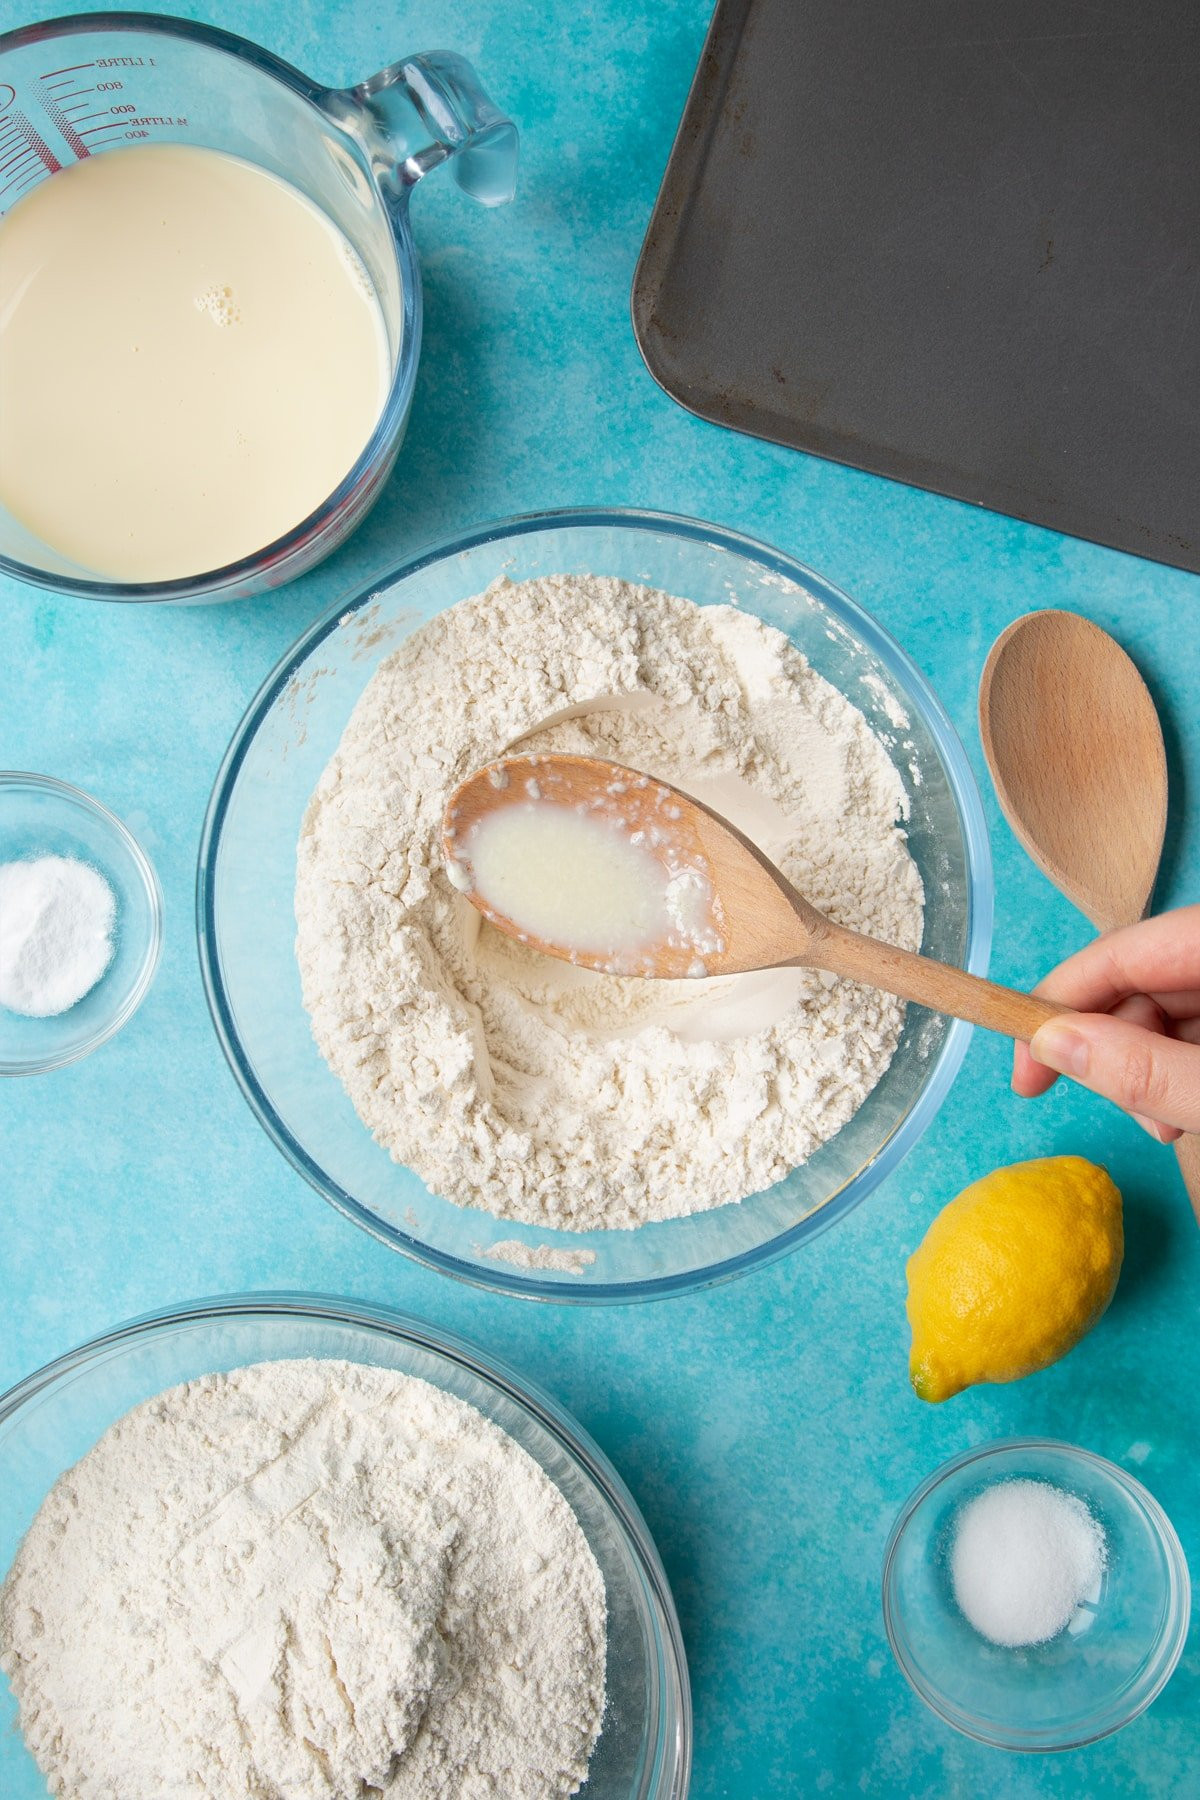 A bowl containing plain flour, salt and bicarbonate of soda. A hand holds a spoon with plant milk on it. Ingredients to make vegan soda bread surround the bowl.